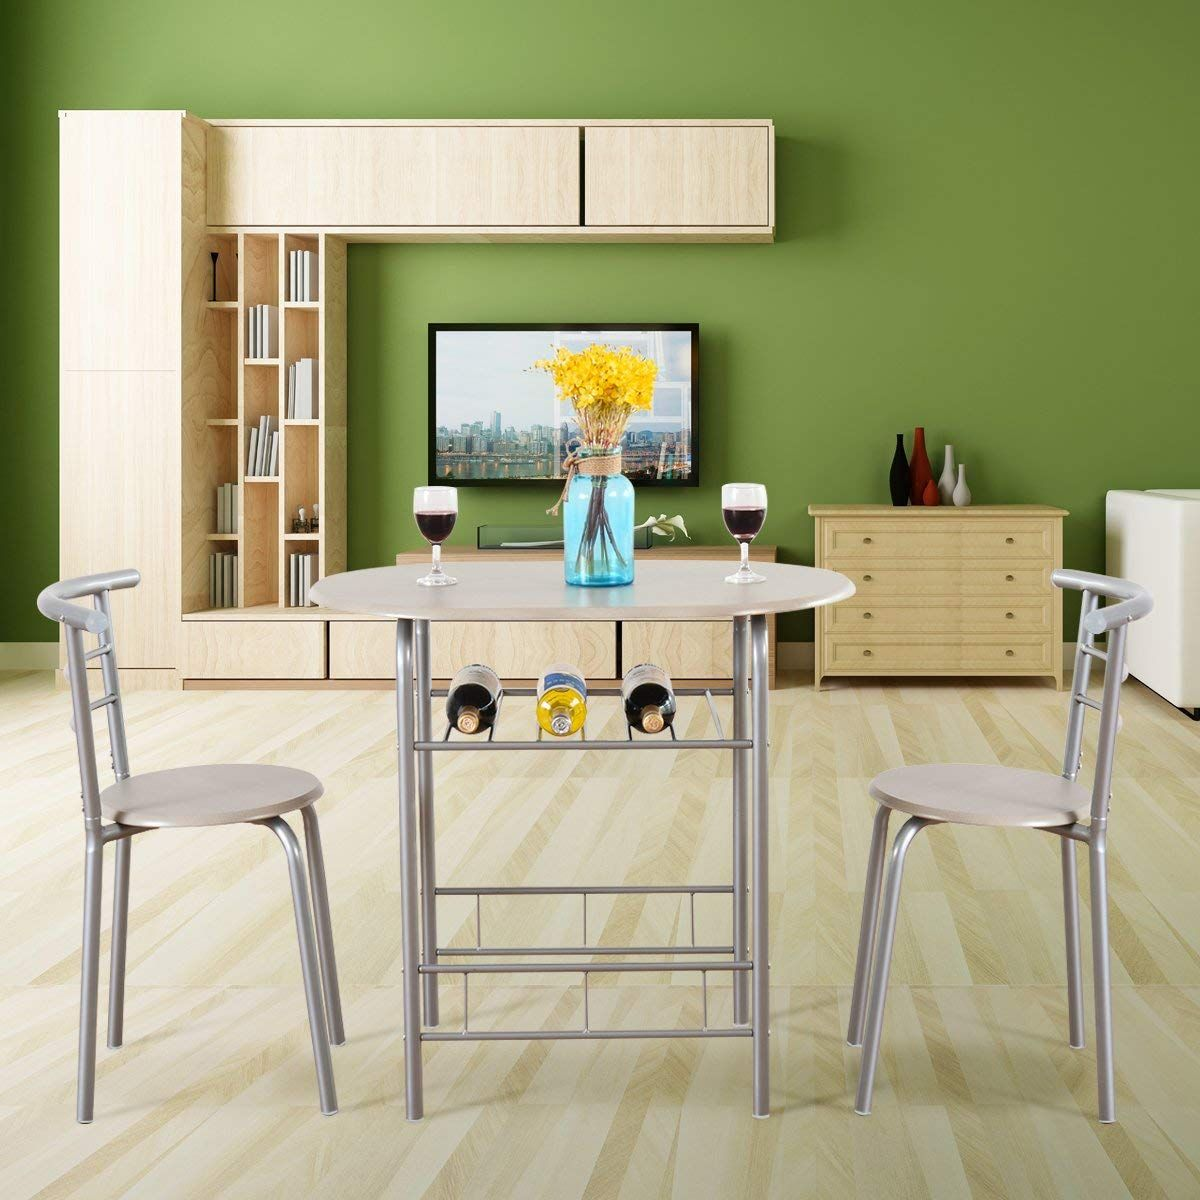 Beech Giantex 3 Piece Dining Set Compact 2 Chairs and Table Set with Metal Frame and Shelf Storage Bistro Pub Breakfast Space Saving for Apartment and Kitchen